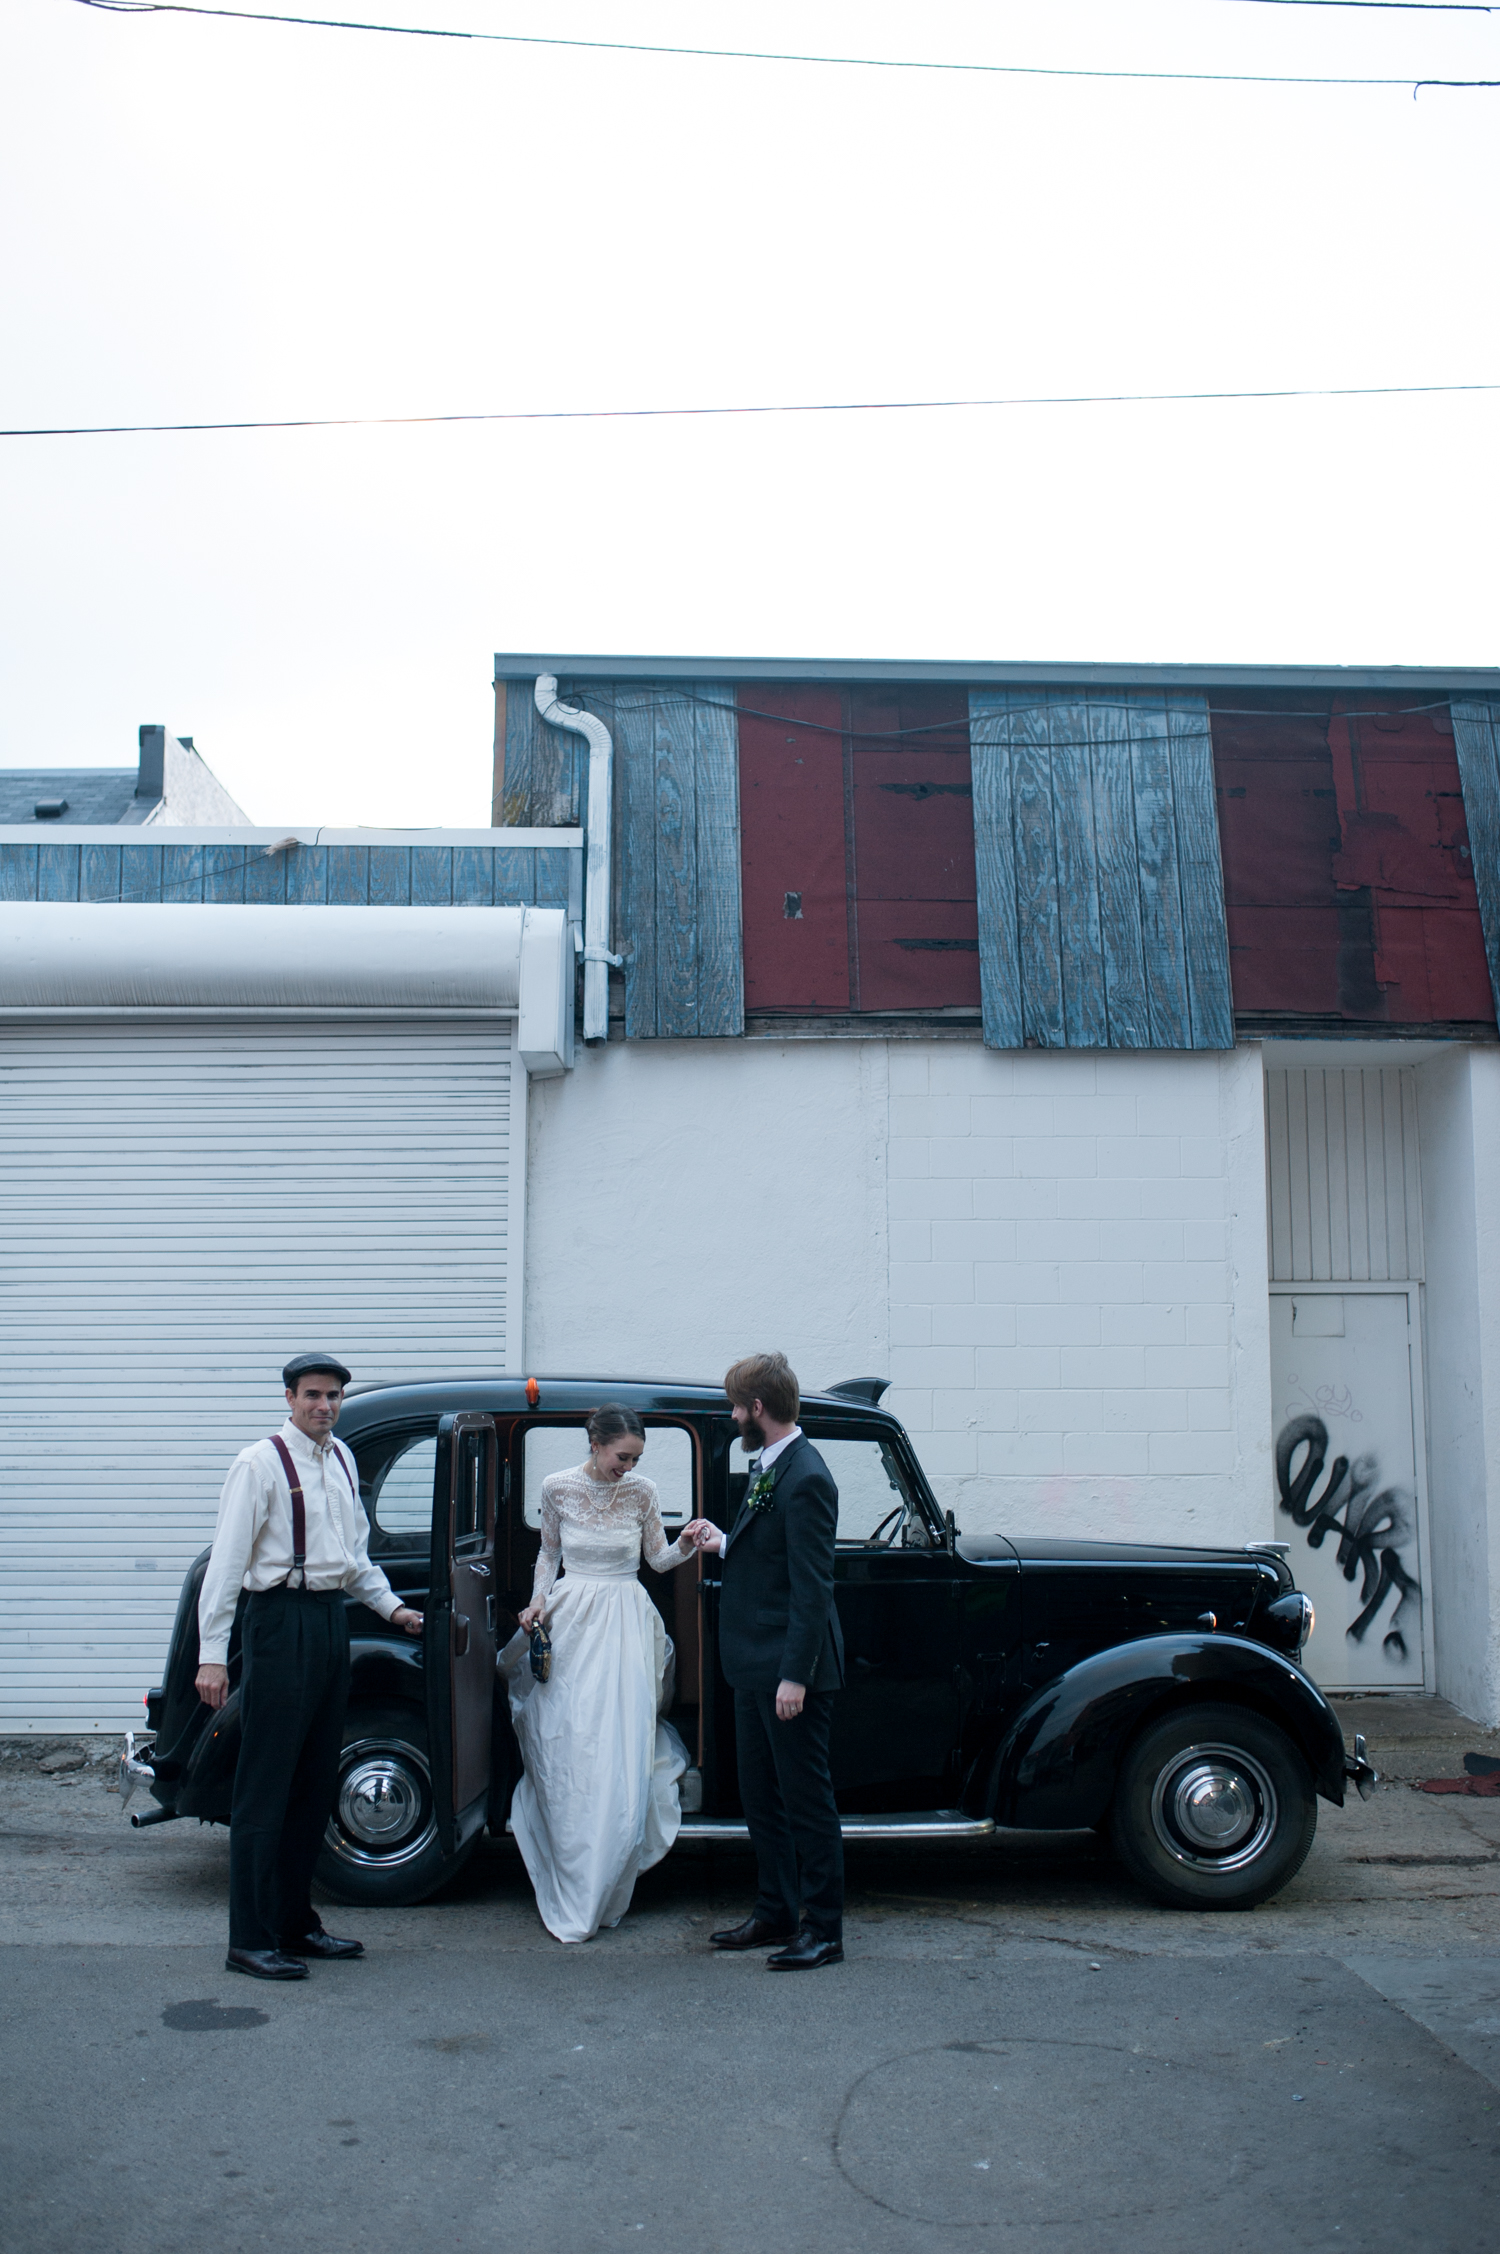 groom_helping_bride_exit_vintage_car_rental_transportation_from_ceremony_to_reception.jpeg